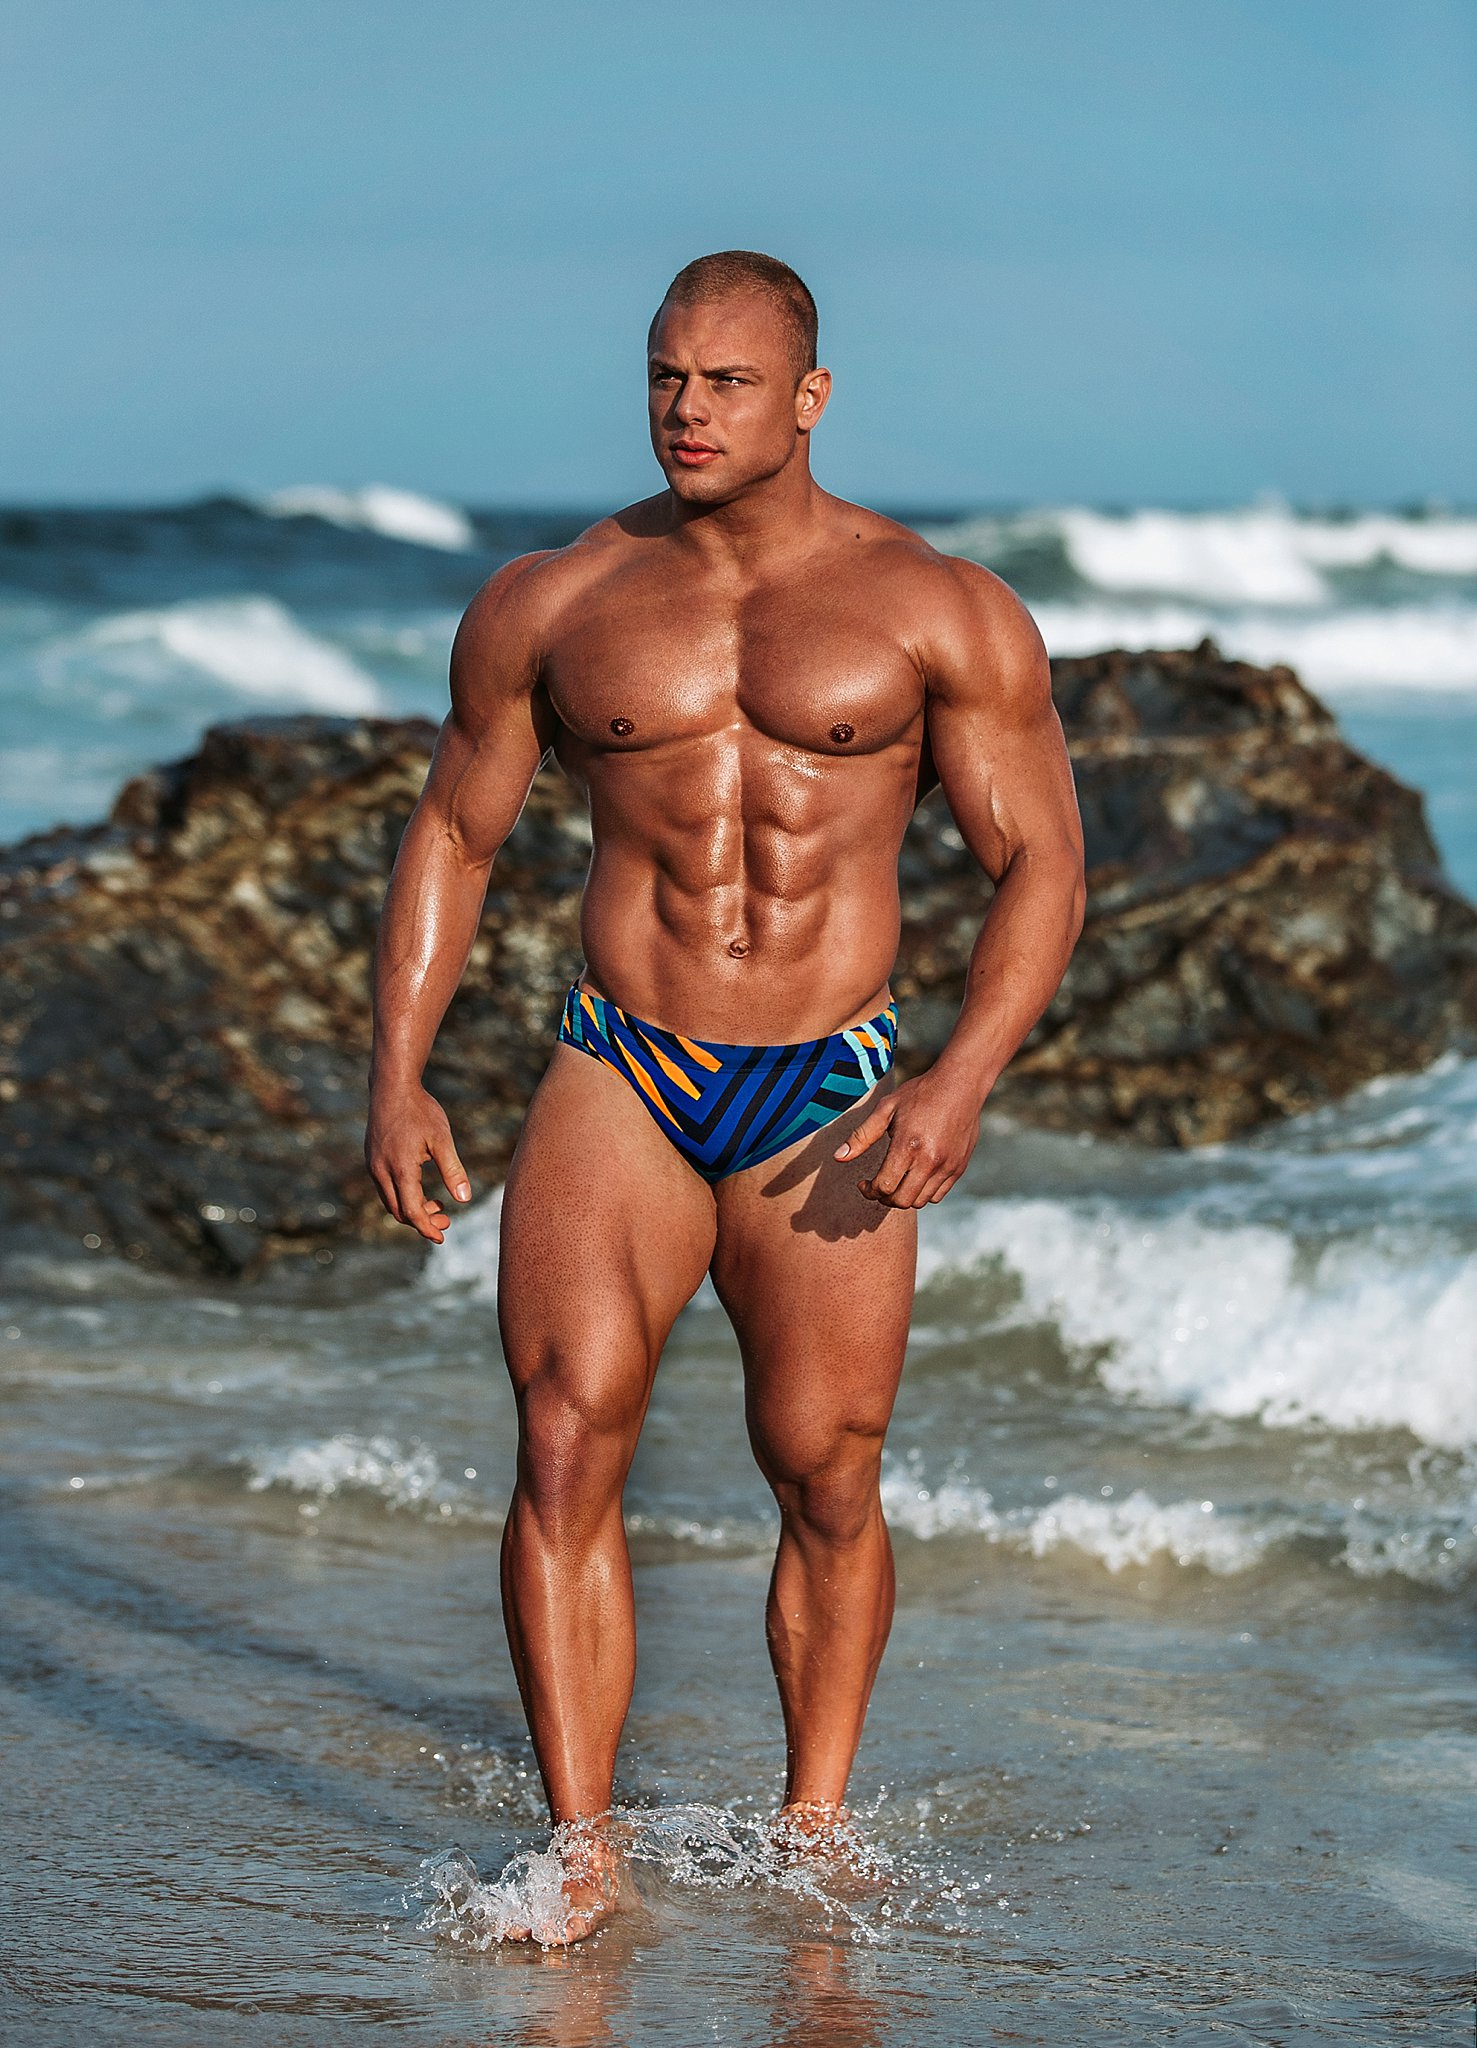 IFBB Fitness Photographer Jarrod